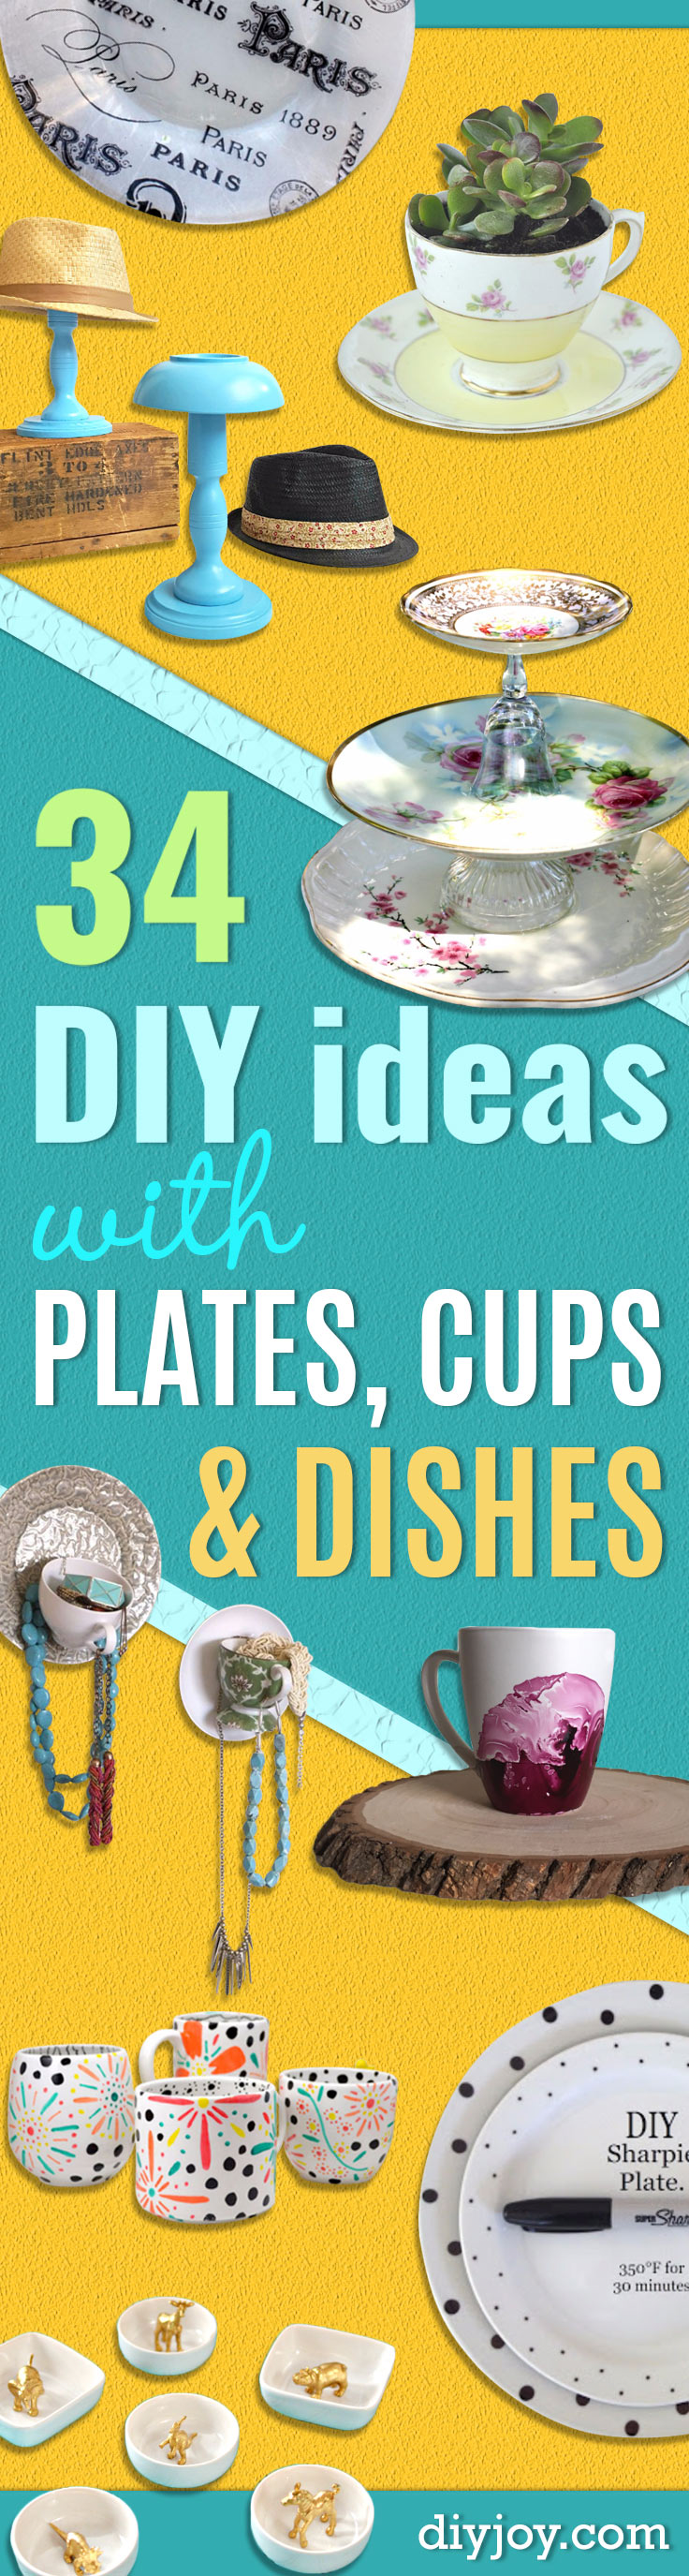 DIY Projects With Old Plates and Dishes -Creative Home Decor for Rustic, Vintage and Farmhouse Looks. Upcycle With These Best Crafts and Project Tutorials http://diyjoy.com/diy-projects-plates-dishes